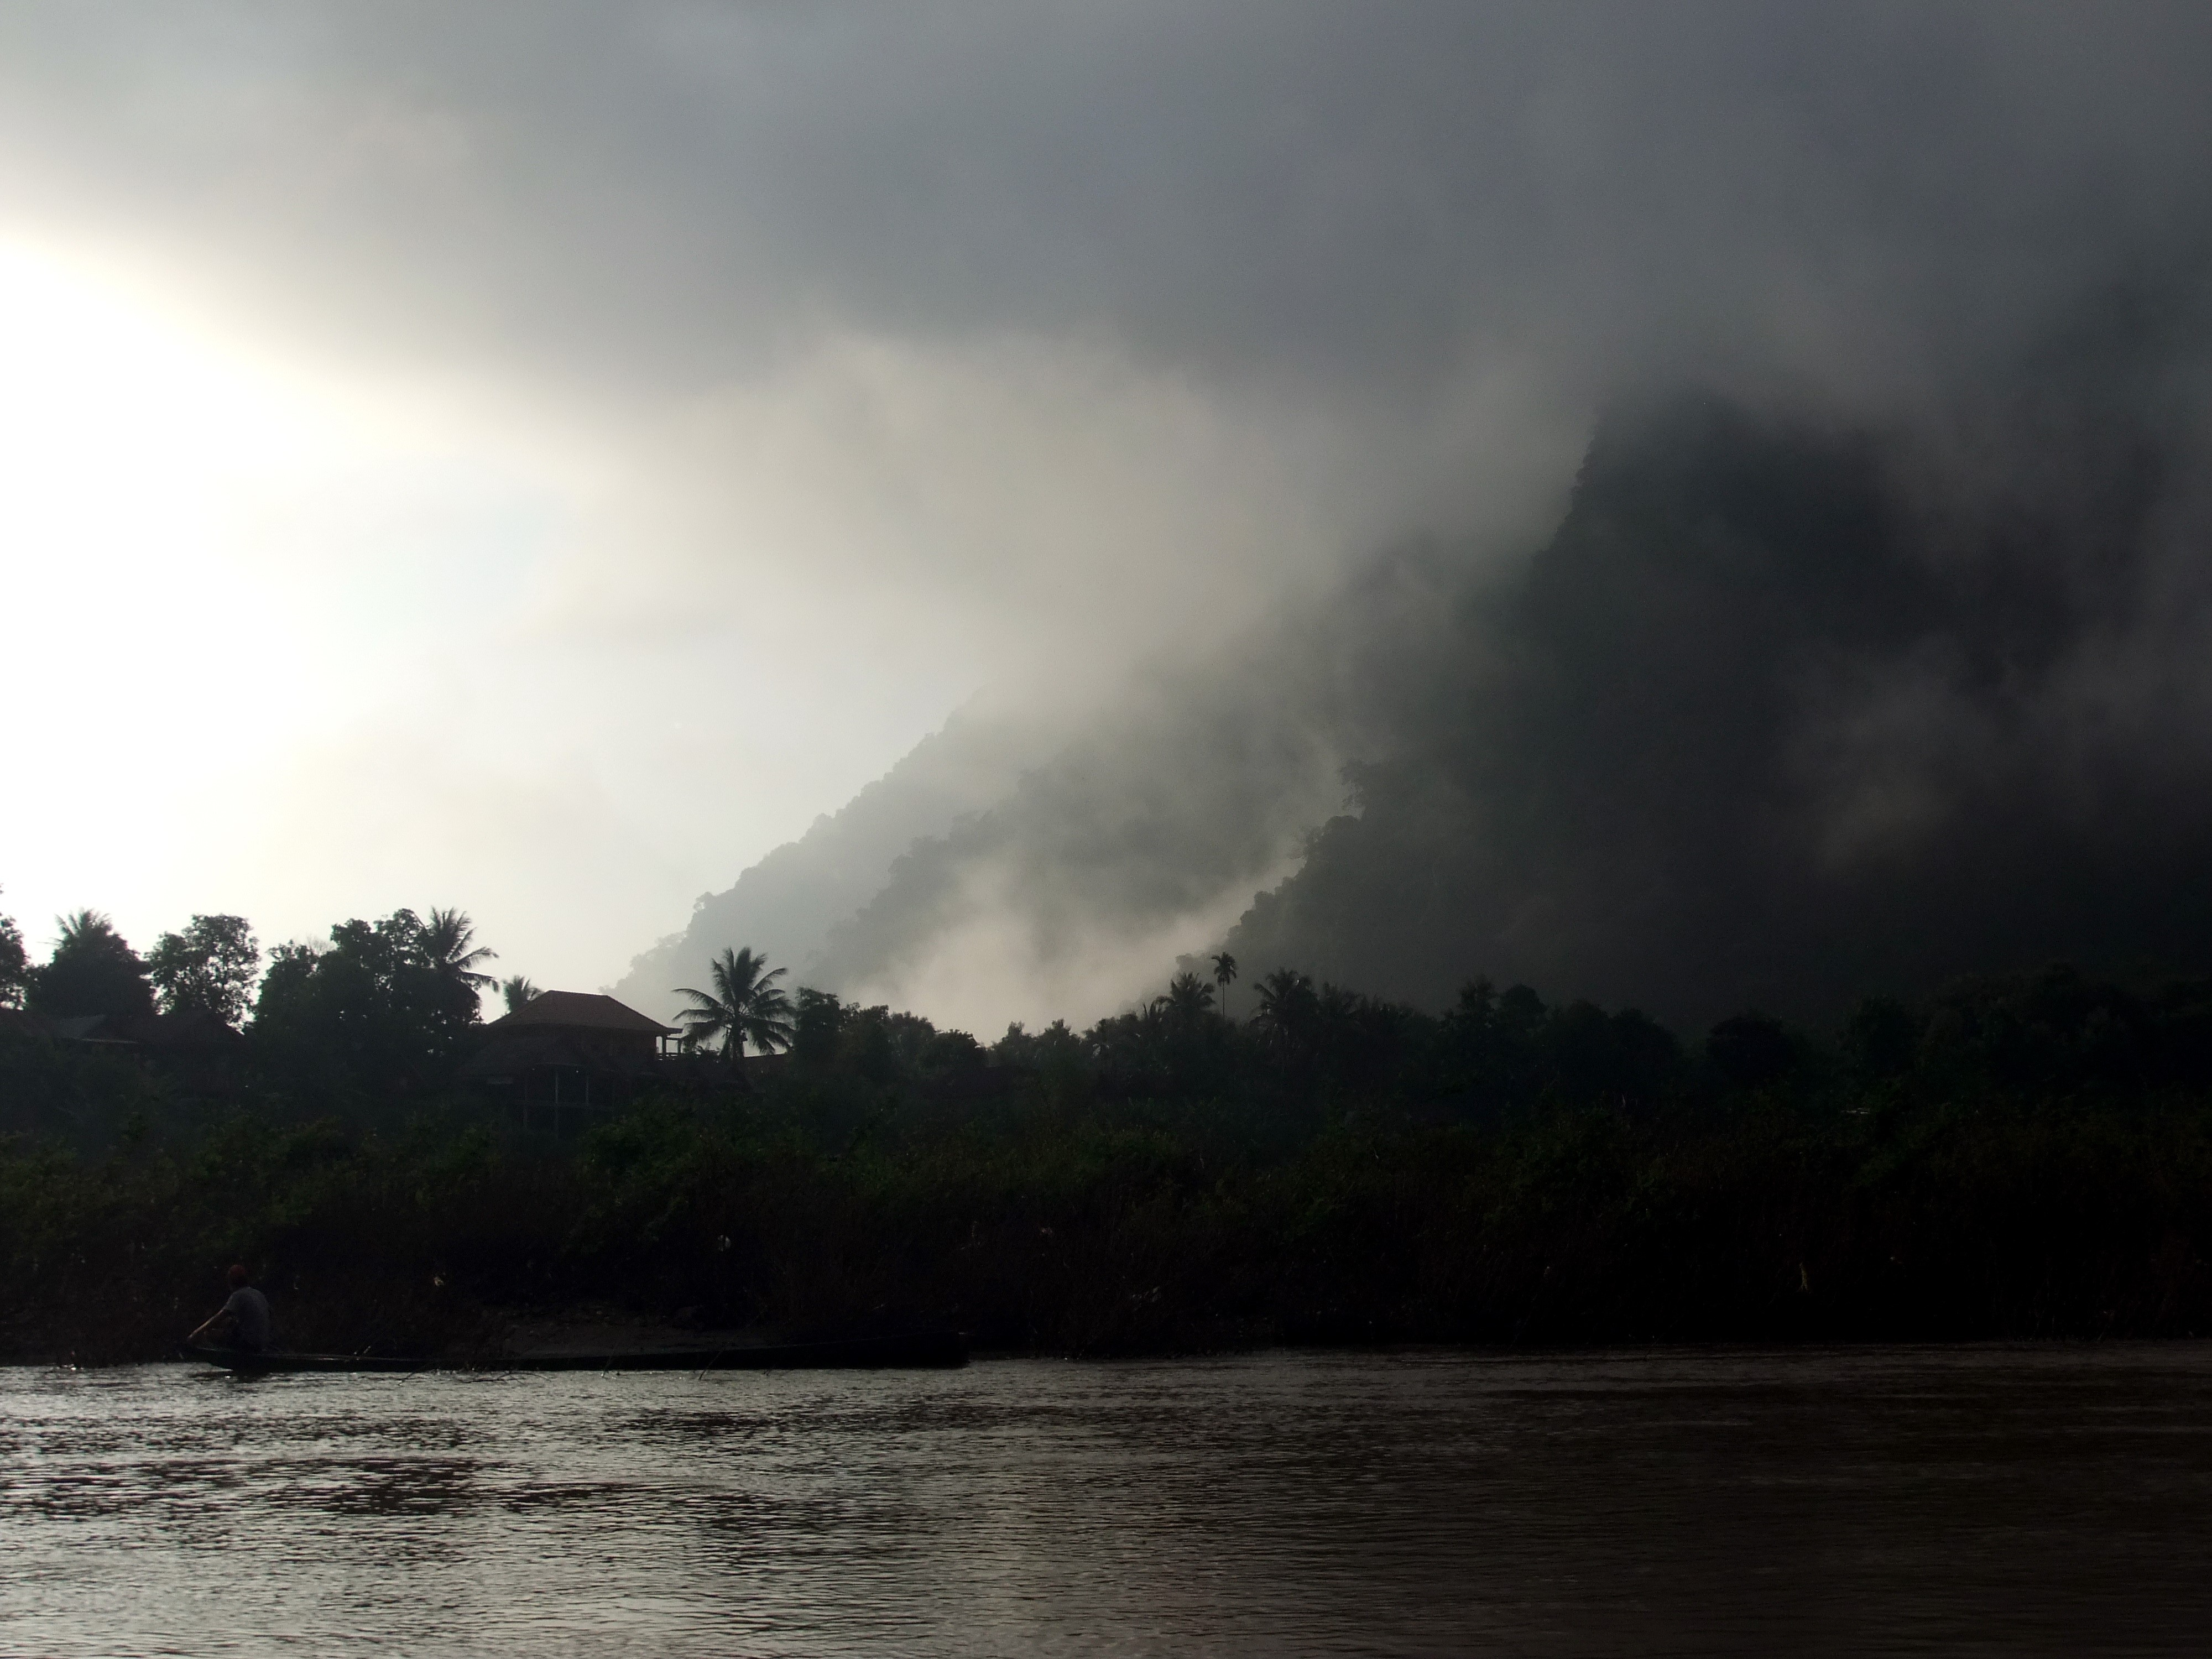 Ou River, with the tall karst mountains hidden in winter mist